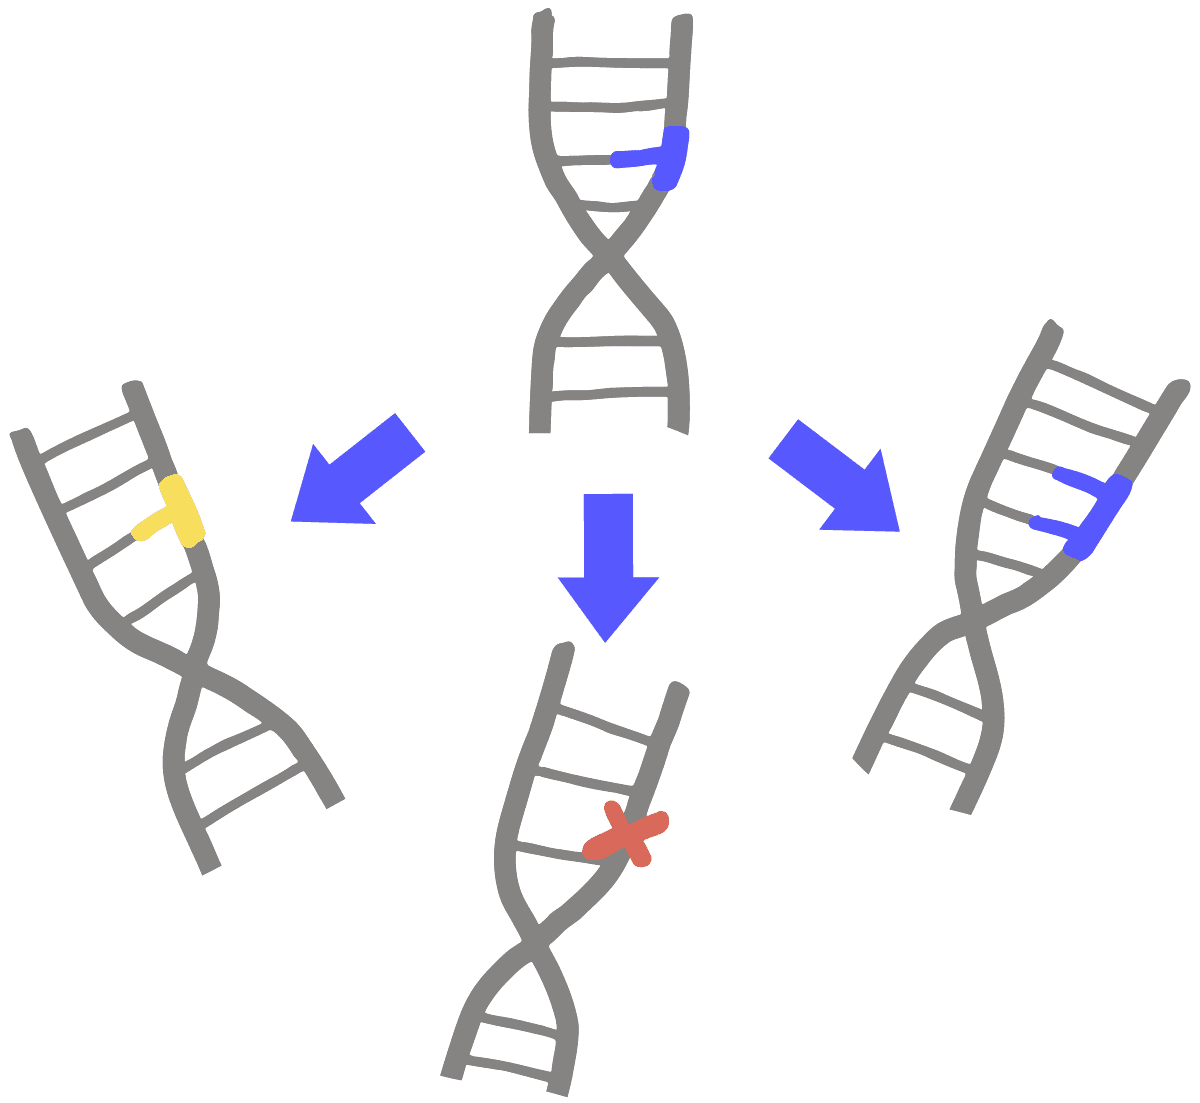 Image of three types of mutations in DNA. A DNA that has had its initial blue base changed to a yellow base represents base-substitution mutations. The DNA that has had its initial blue base changed to a red cross represents a deletion mutation. The DNA that has had its initial blue base changed to two blue bases represents an insertion mutation.